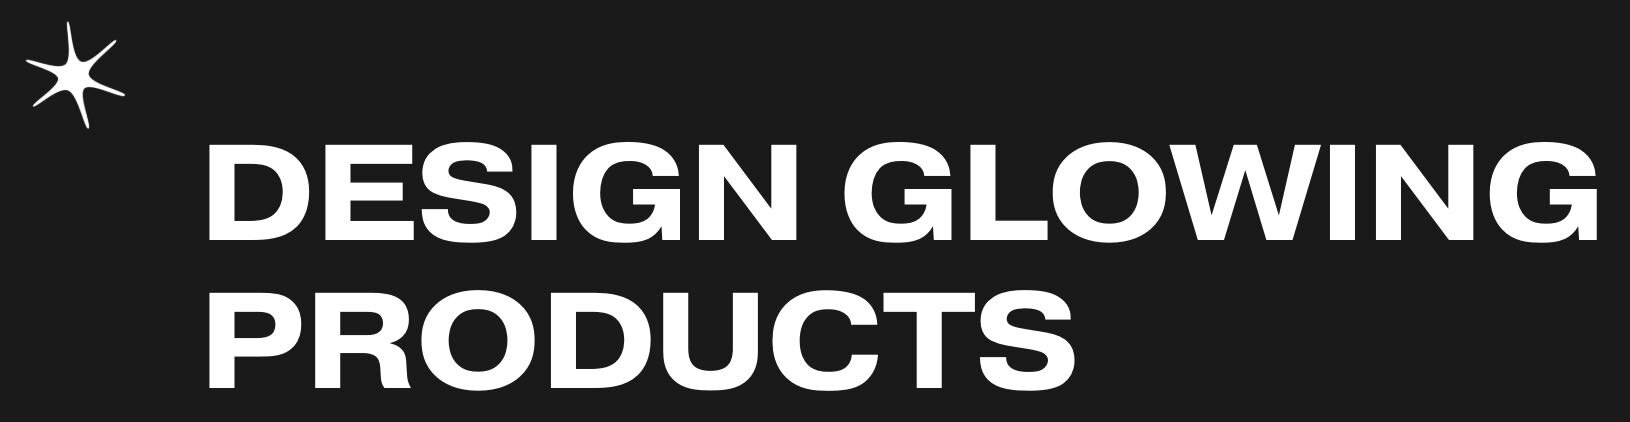 *glowing products.jpg